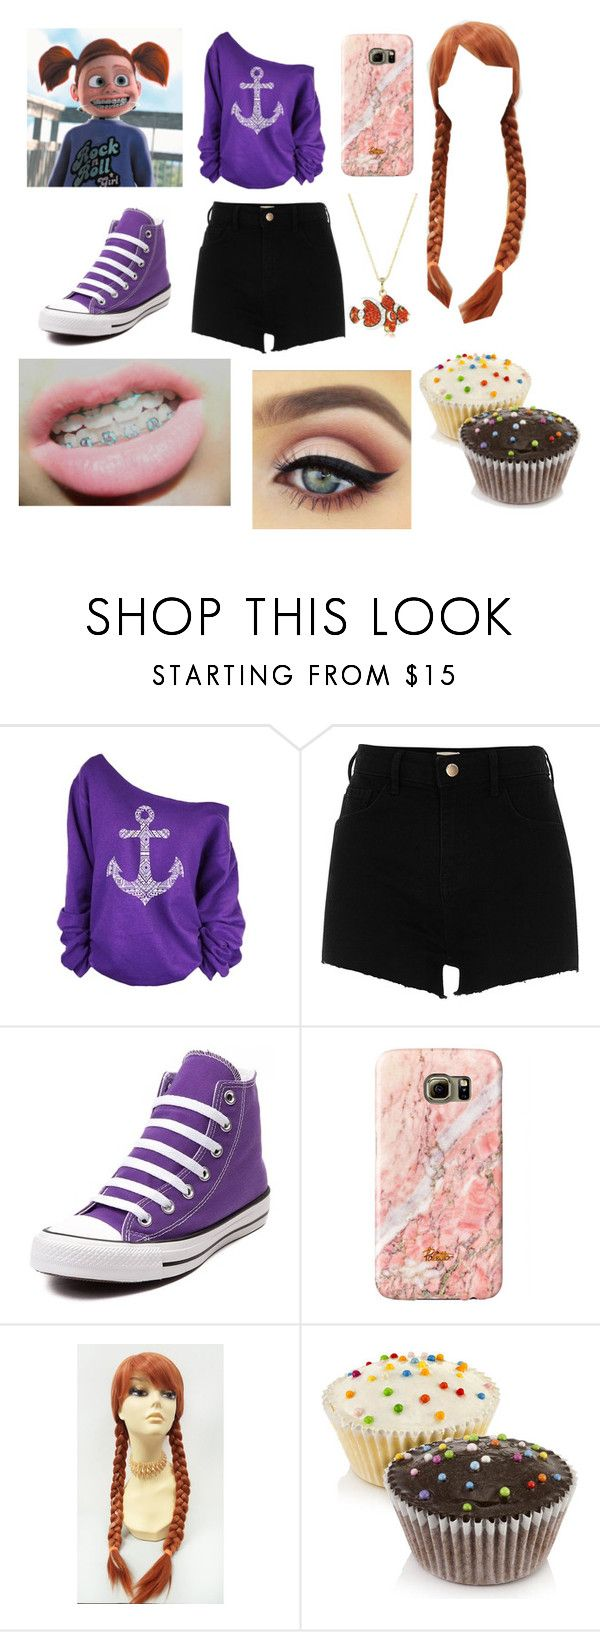 """""""Finding Nemo:Darla All Grown Up"""" by stephen-james-lover ❤ liked on Polyvore featuring WithChic, River Island, Converse and Andrew Hamilton Crawford"""